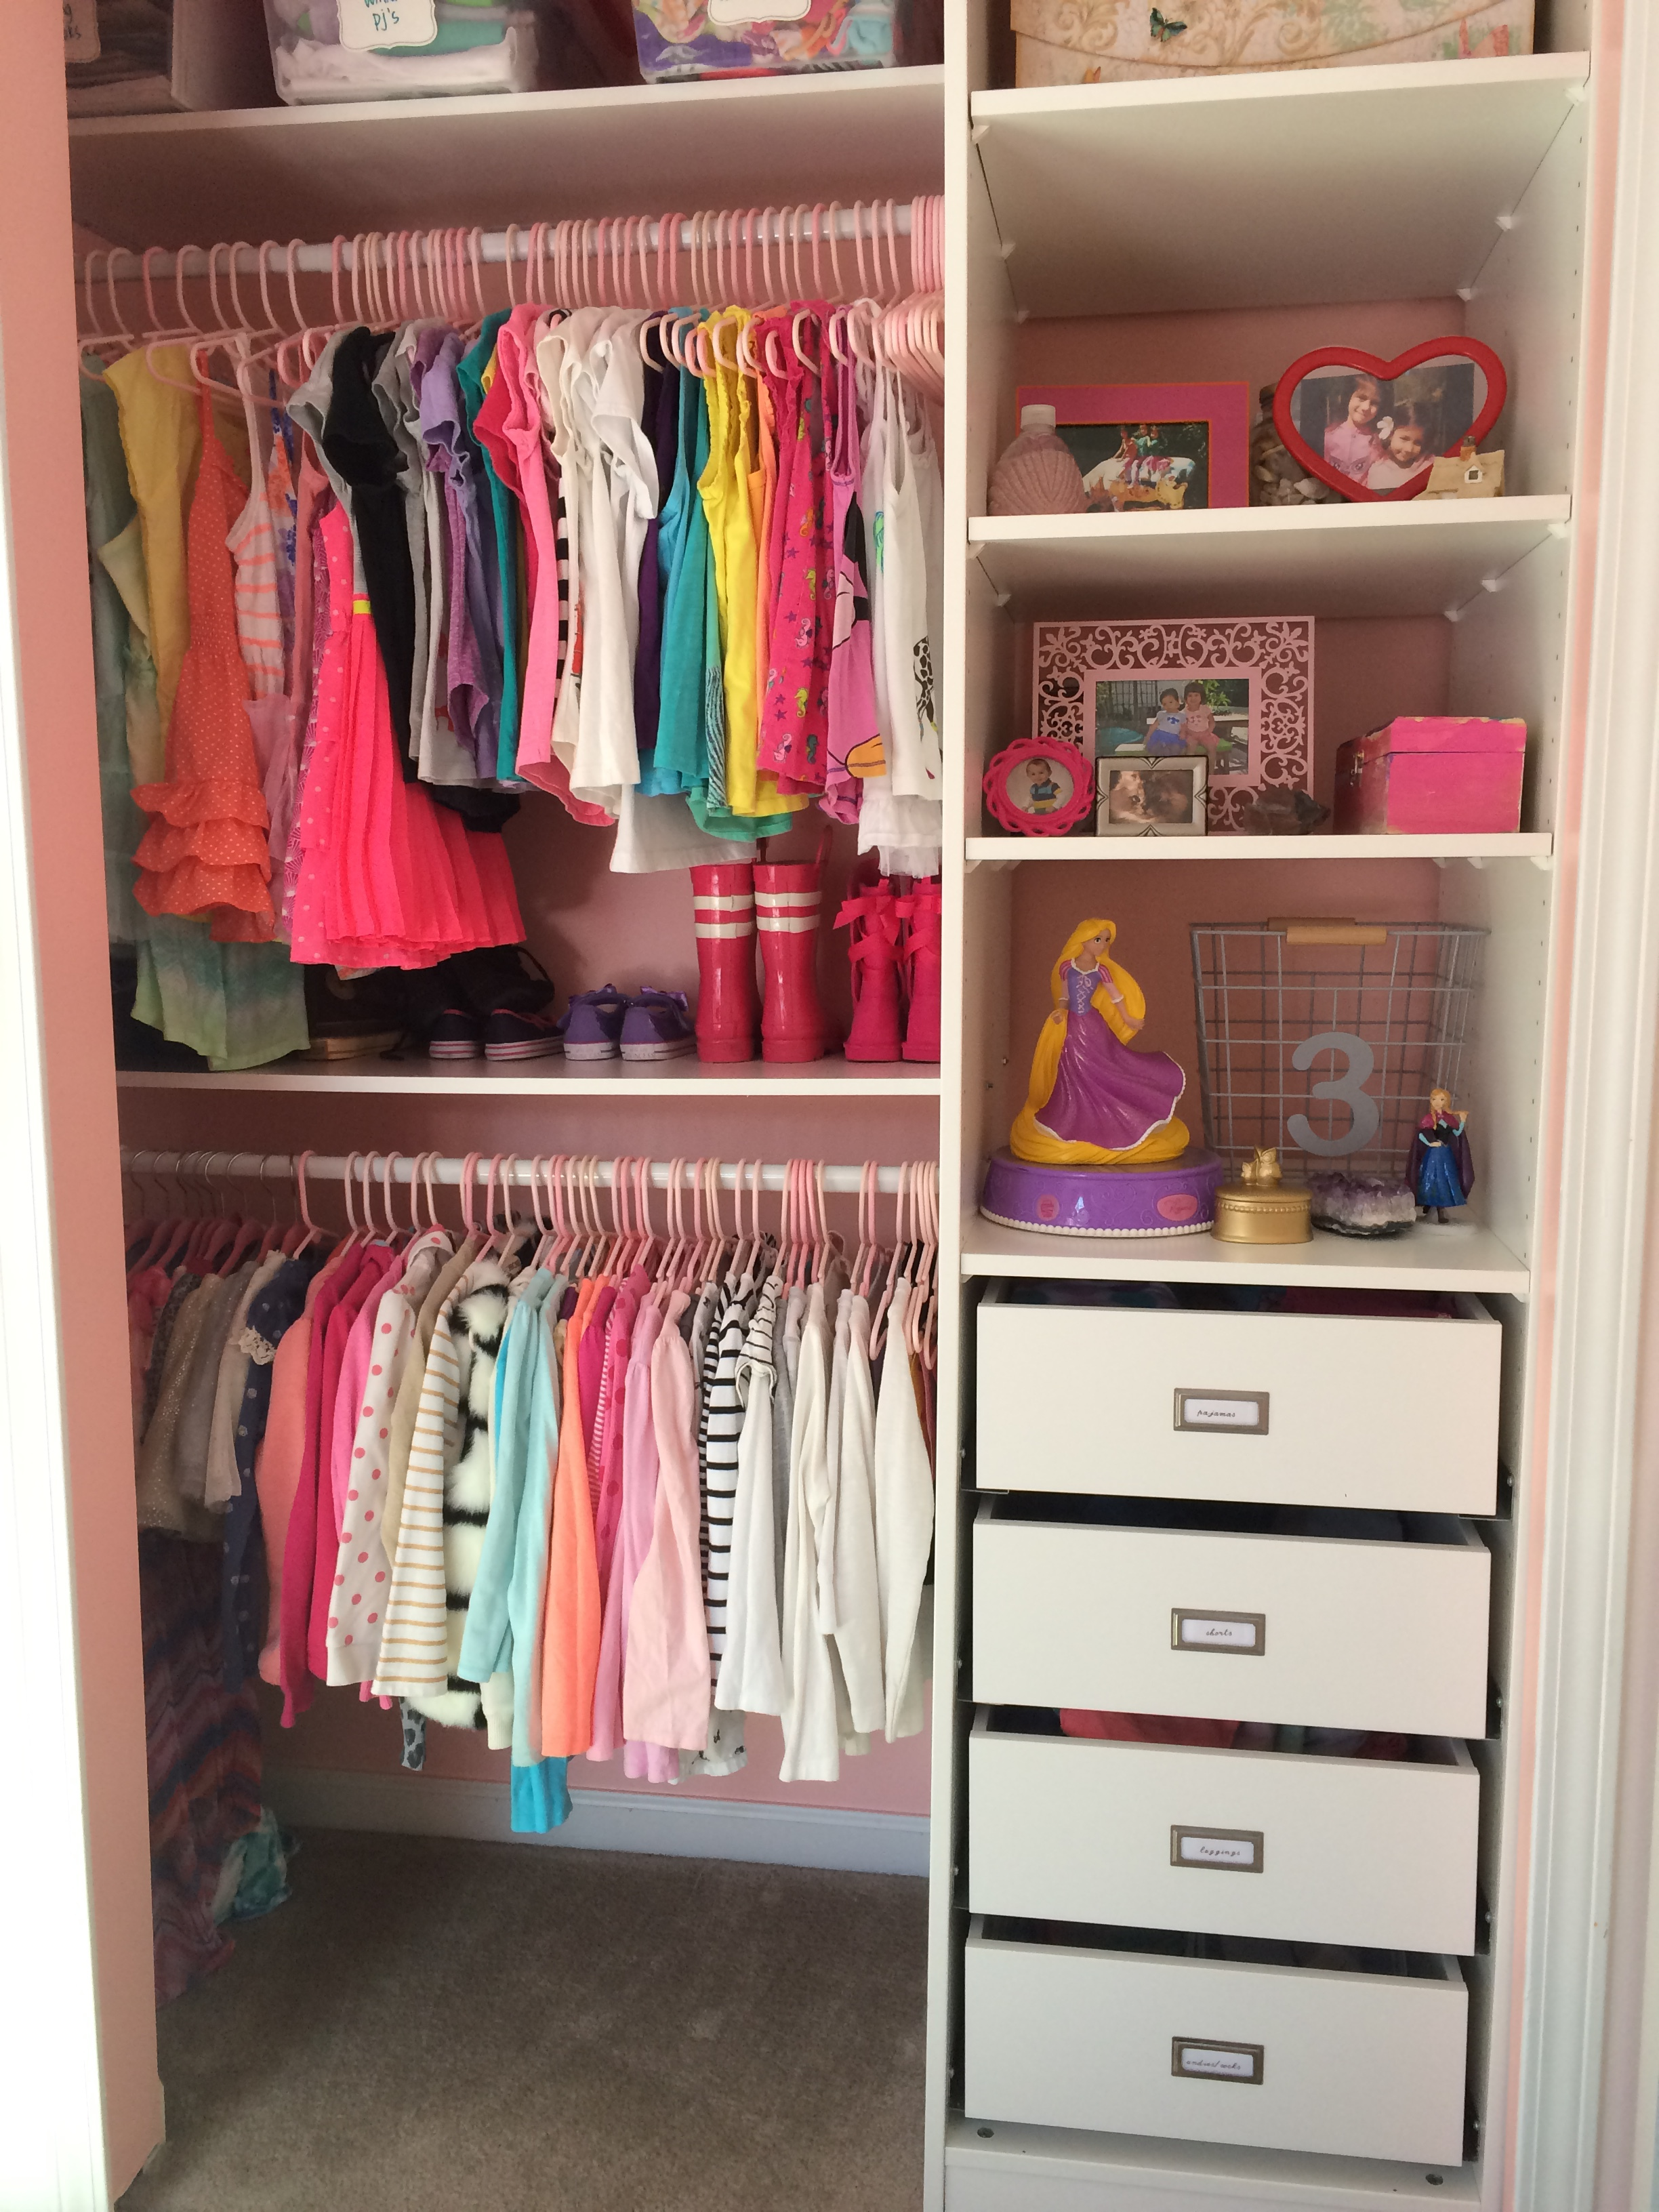 area kids the room kid it a you in into lots pin if storage turn toy your have closet bottom wardrobe empty s of